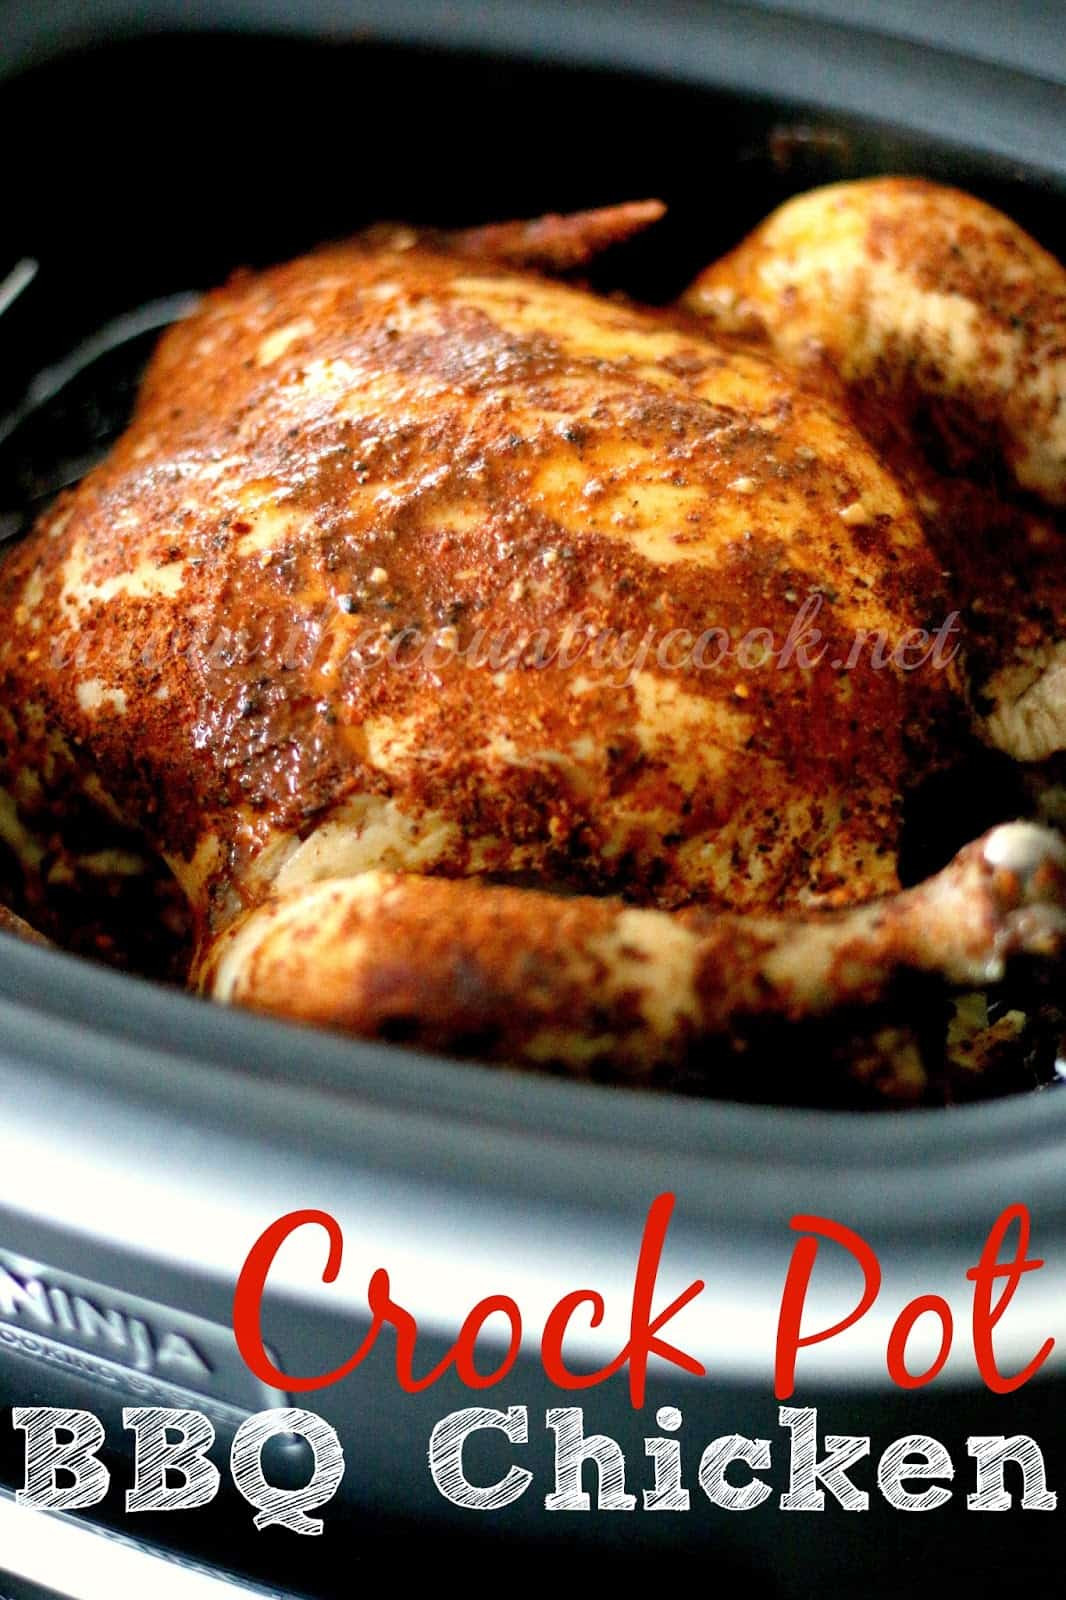 Whole Chicken In Crockpot  Crock Pot Whole BBQ Chicken The Country Cook